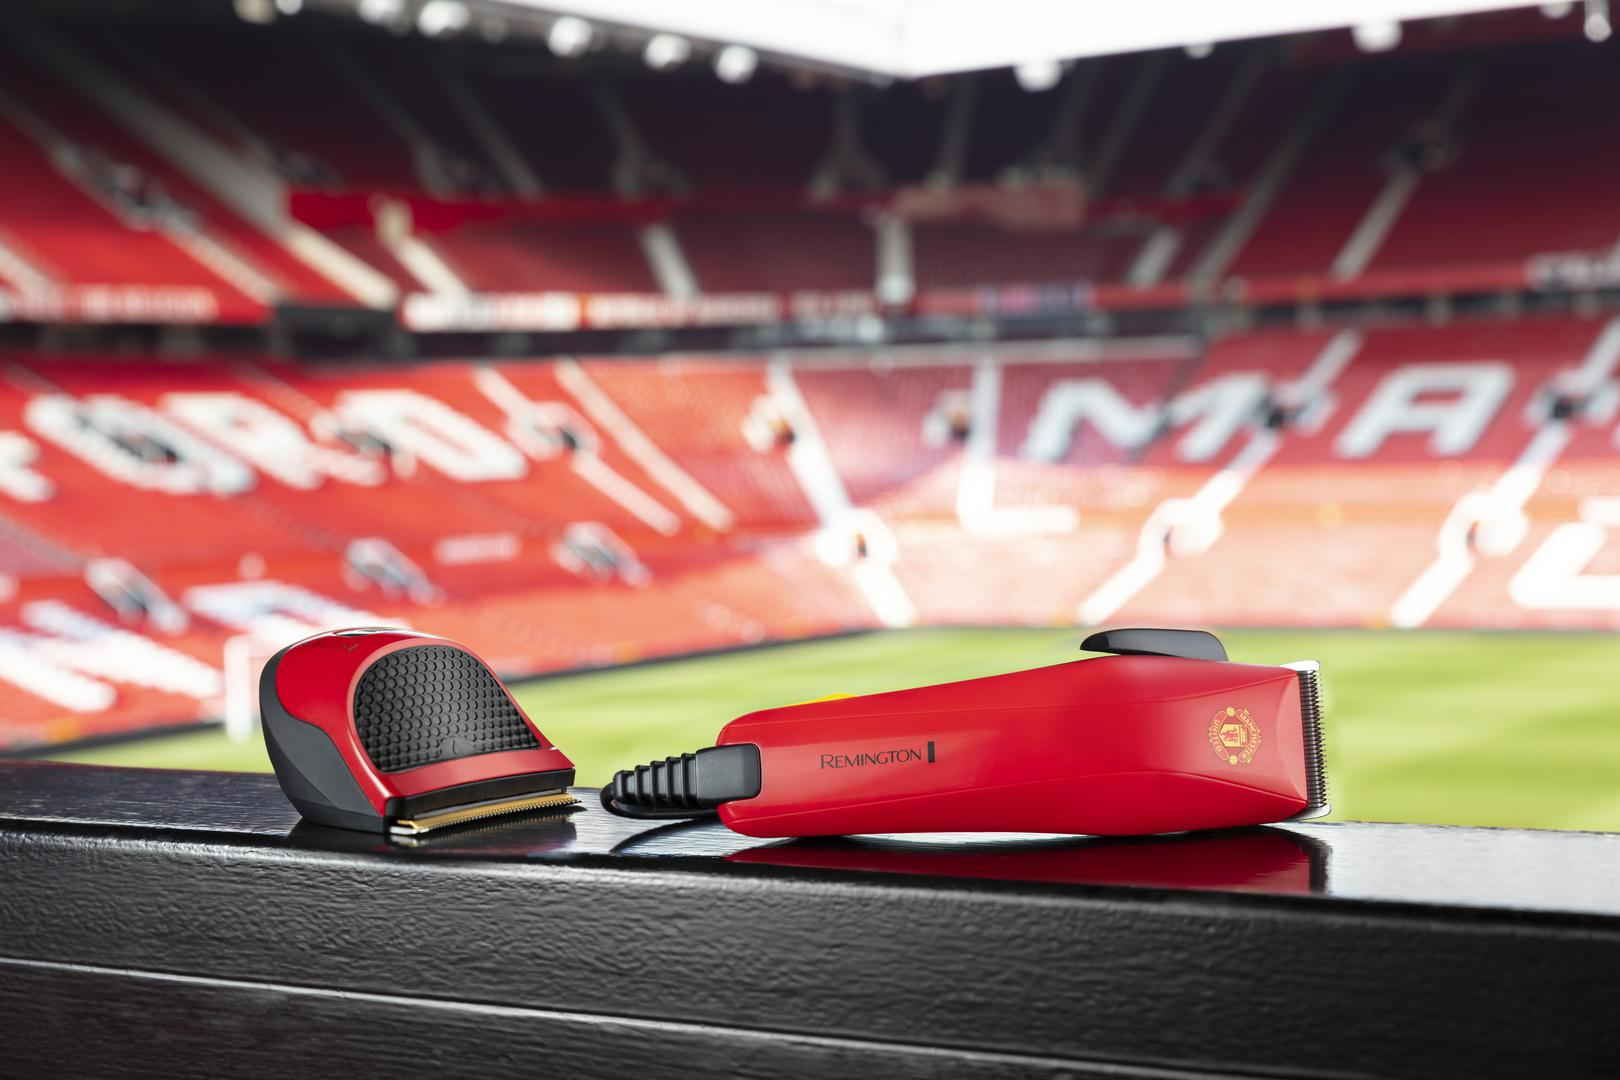 Two of the styling products in the co-branded Remington and Manchester United range